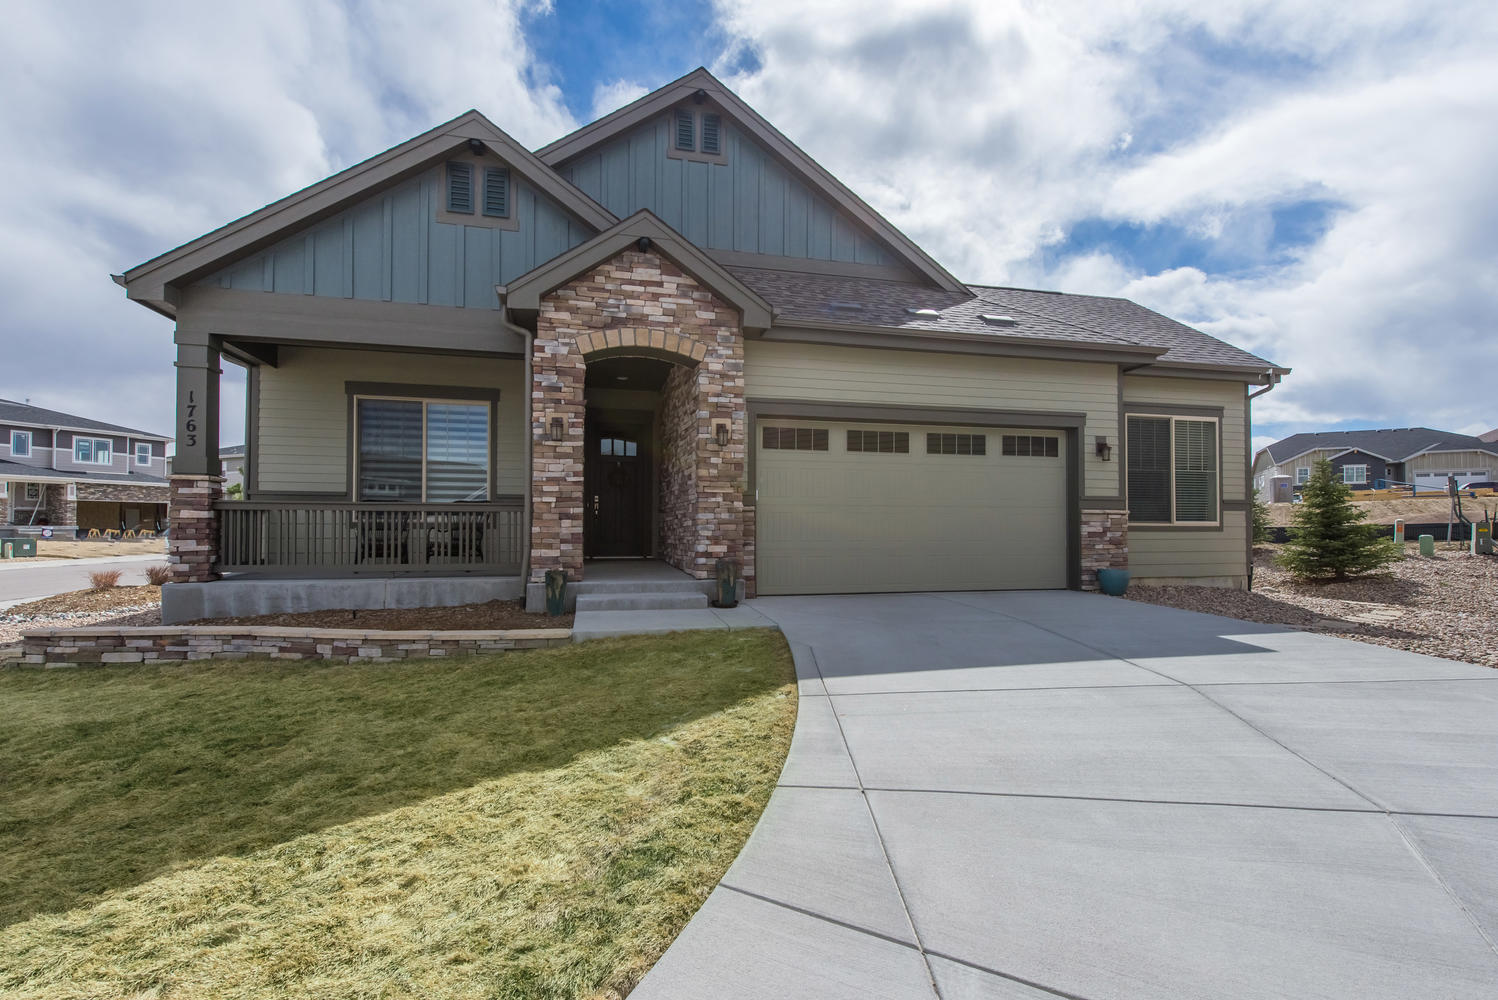 Single Family Home for Active at Better than new contemporary ranch home. 1763 Diamond Head Drive Castle Rock, Colorado 80104 United States